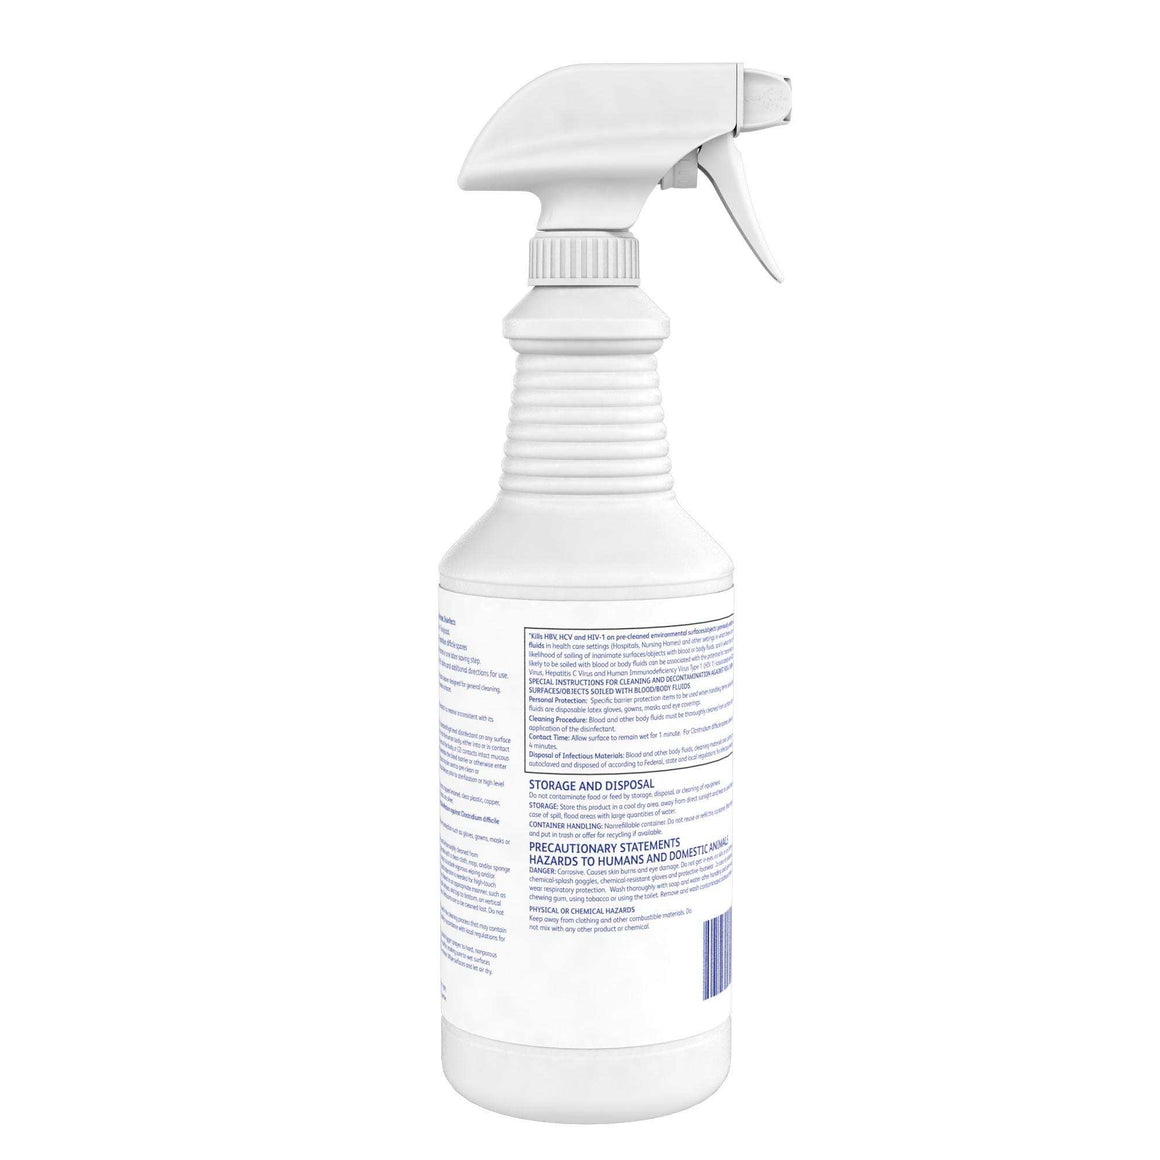 Avert Disinfectant Sporicidal Spray, 32oz - Medical Grade - **BACK IN STOCK 7/22/20**